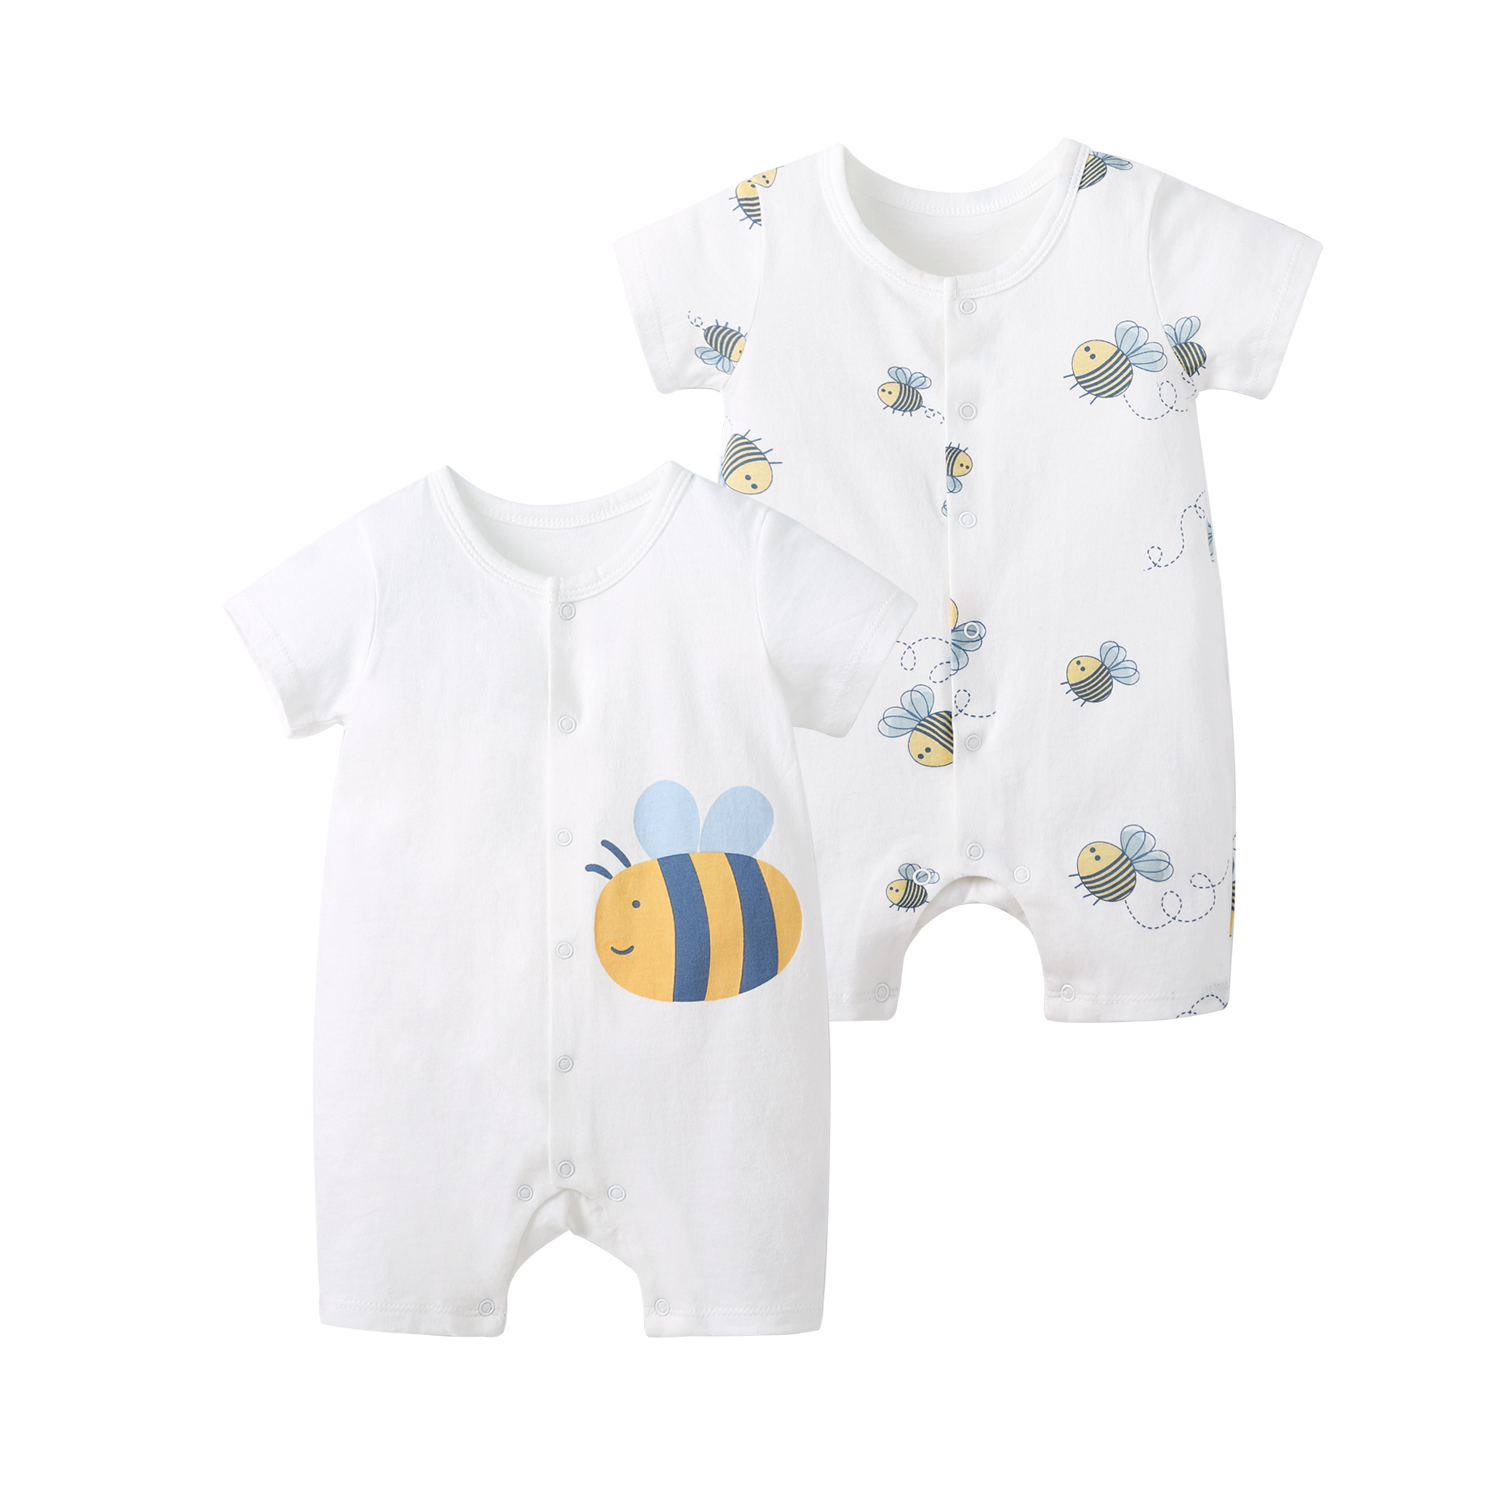 Pureborn 2-Pack Baby Rompers Cartoon Bees Baby Boy Girl Summer Clothes Onesies Pajamas Breathable Cotton Baby Playsuit